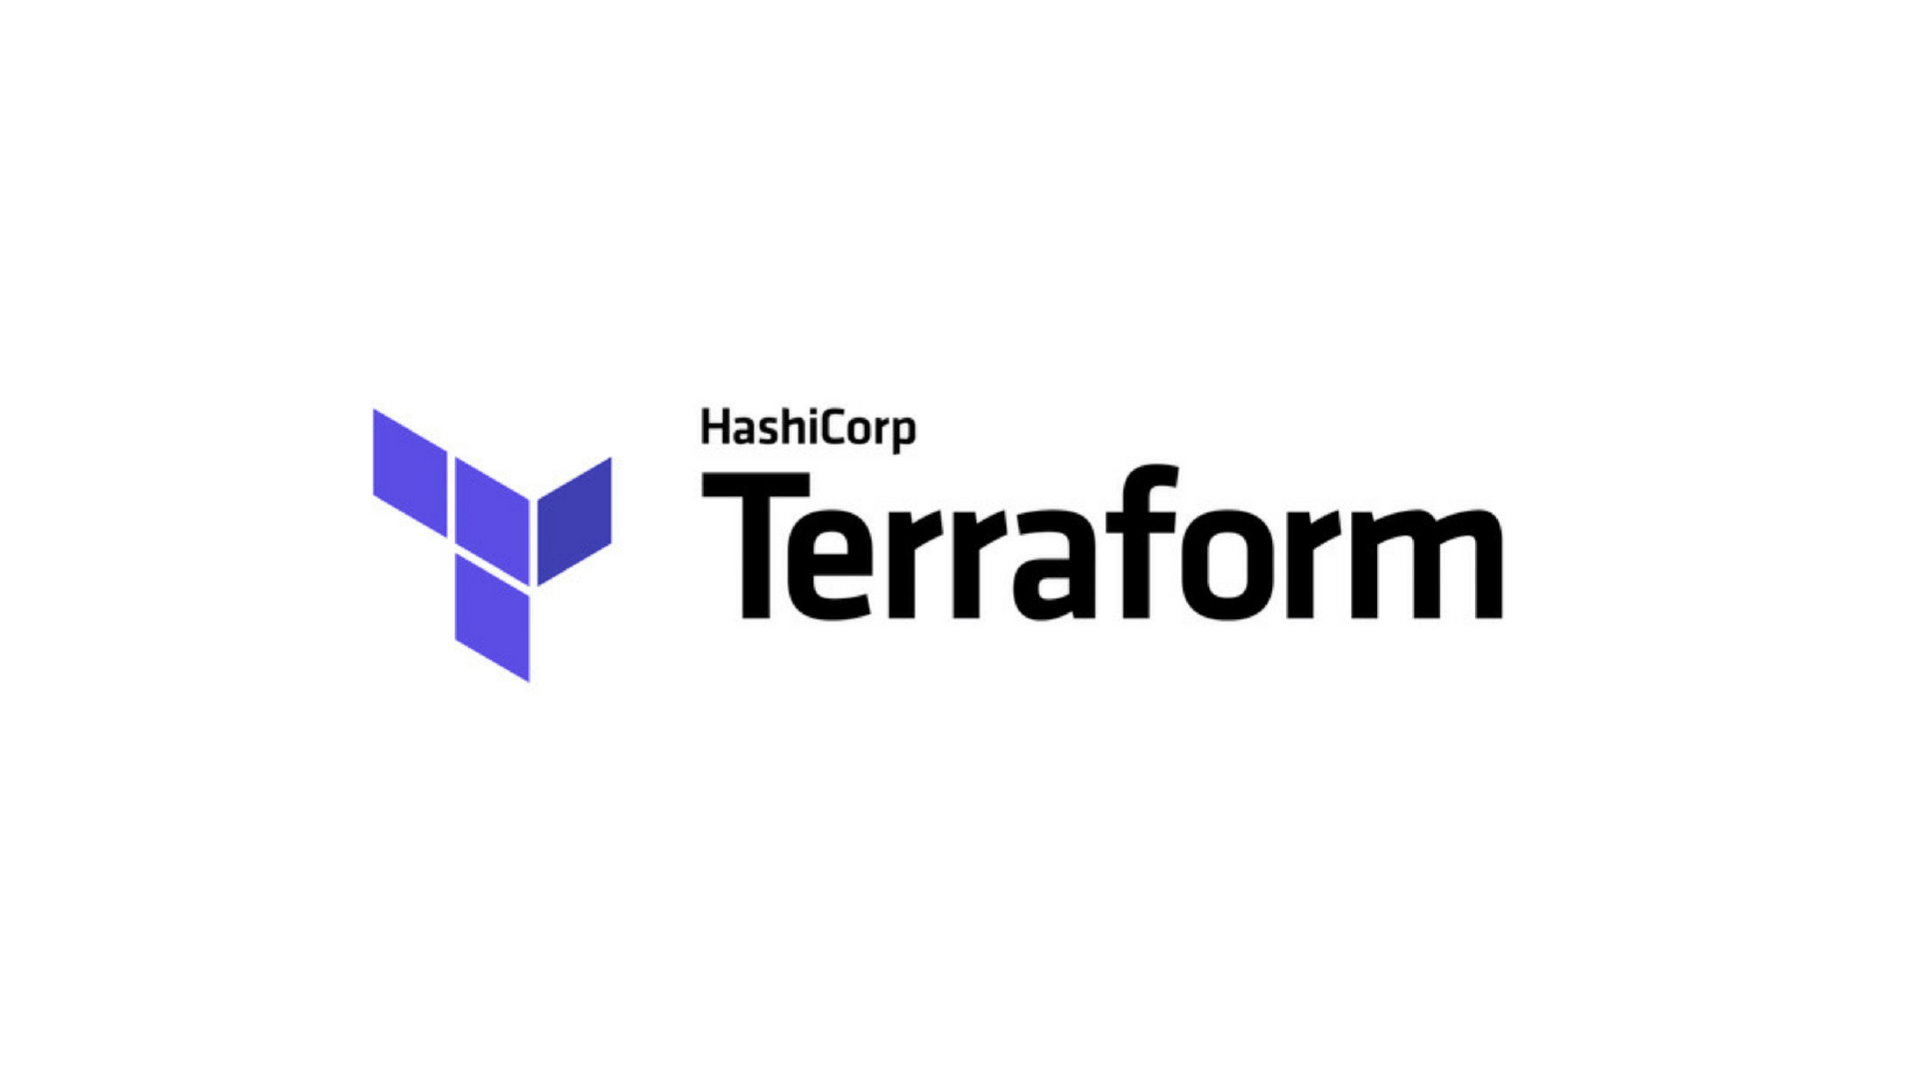 Creating your first EC2 instance with Terraform